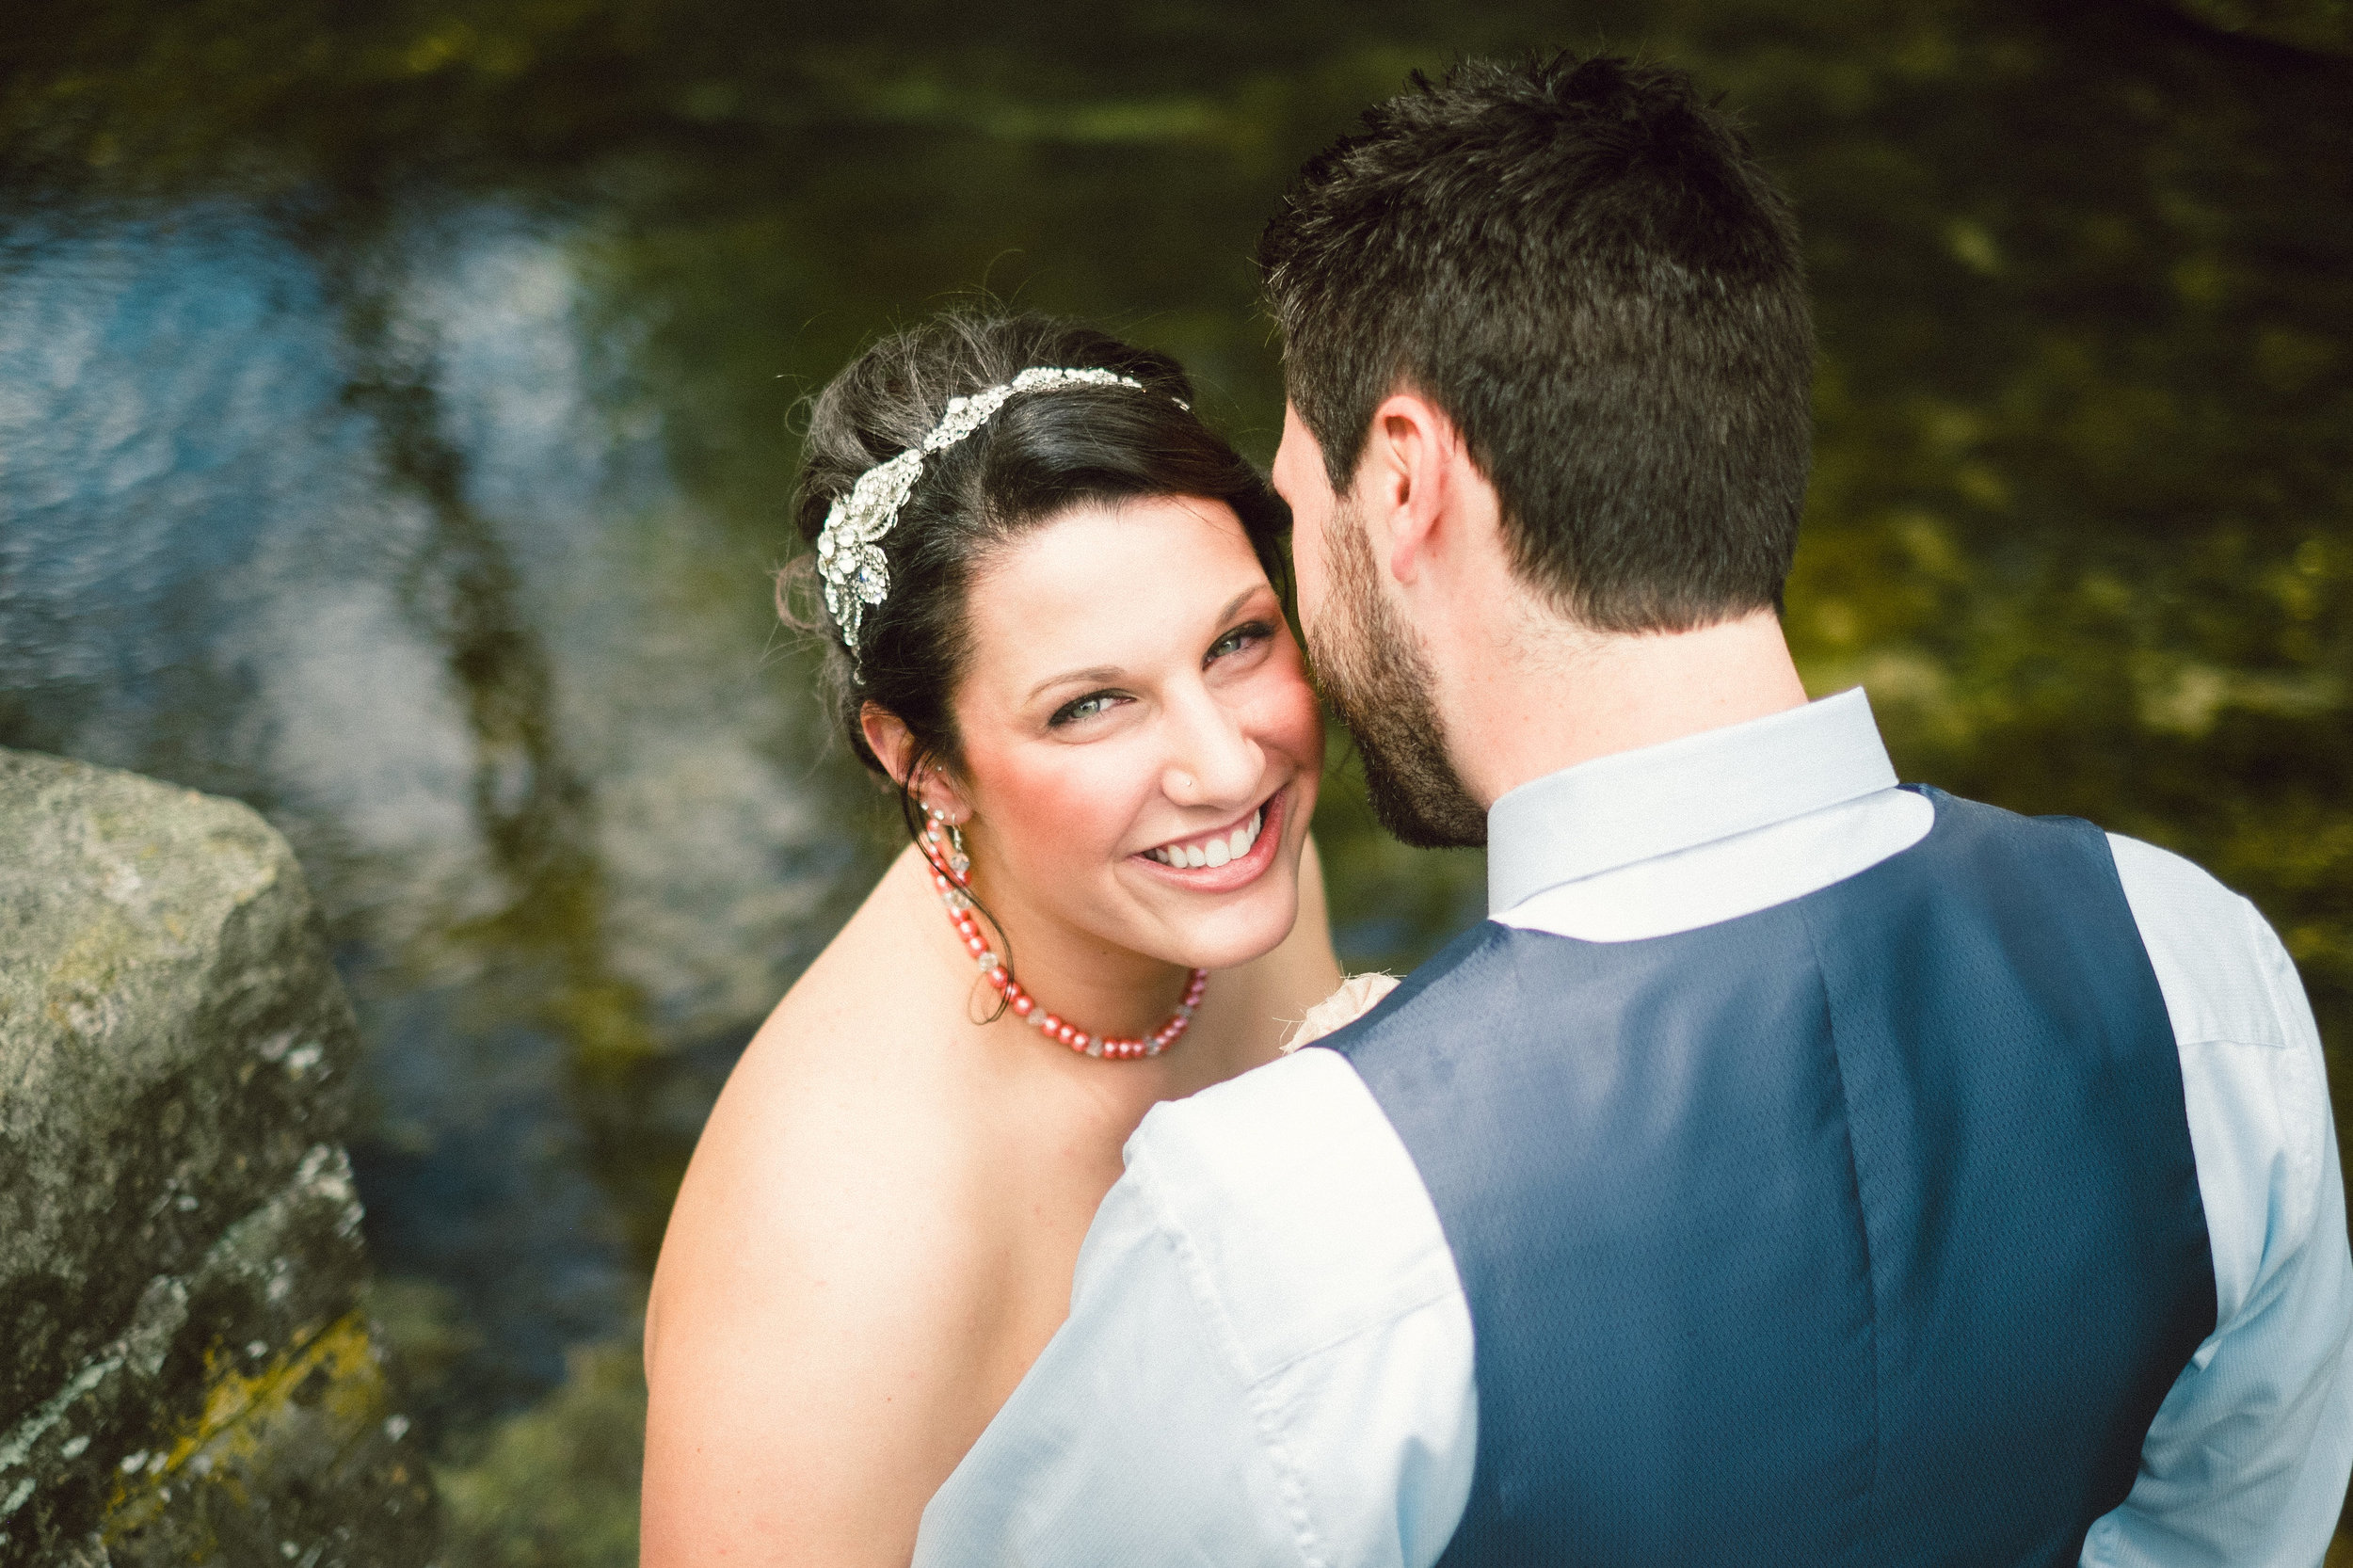 PennsylvaniaWeddingPhotographer-91.jpg